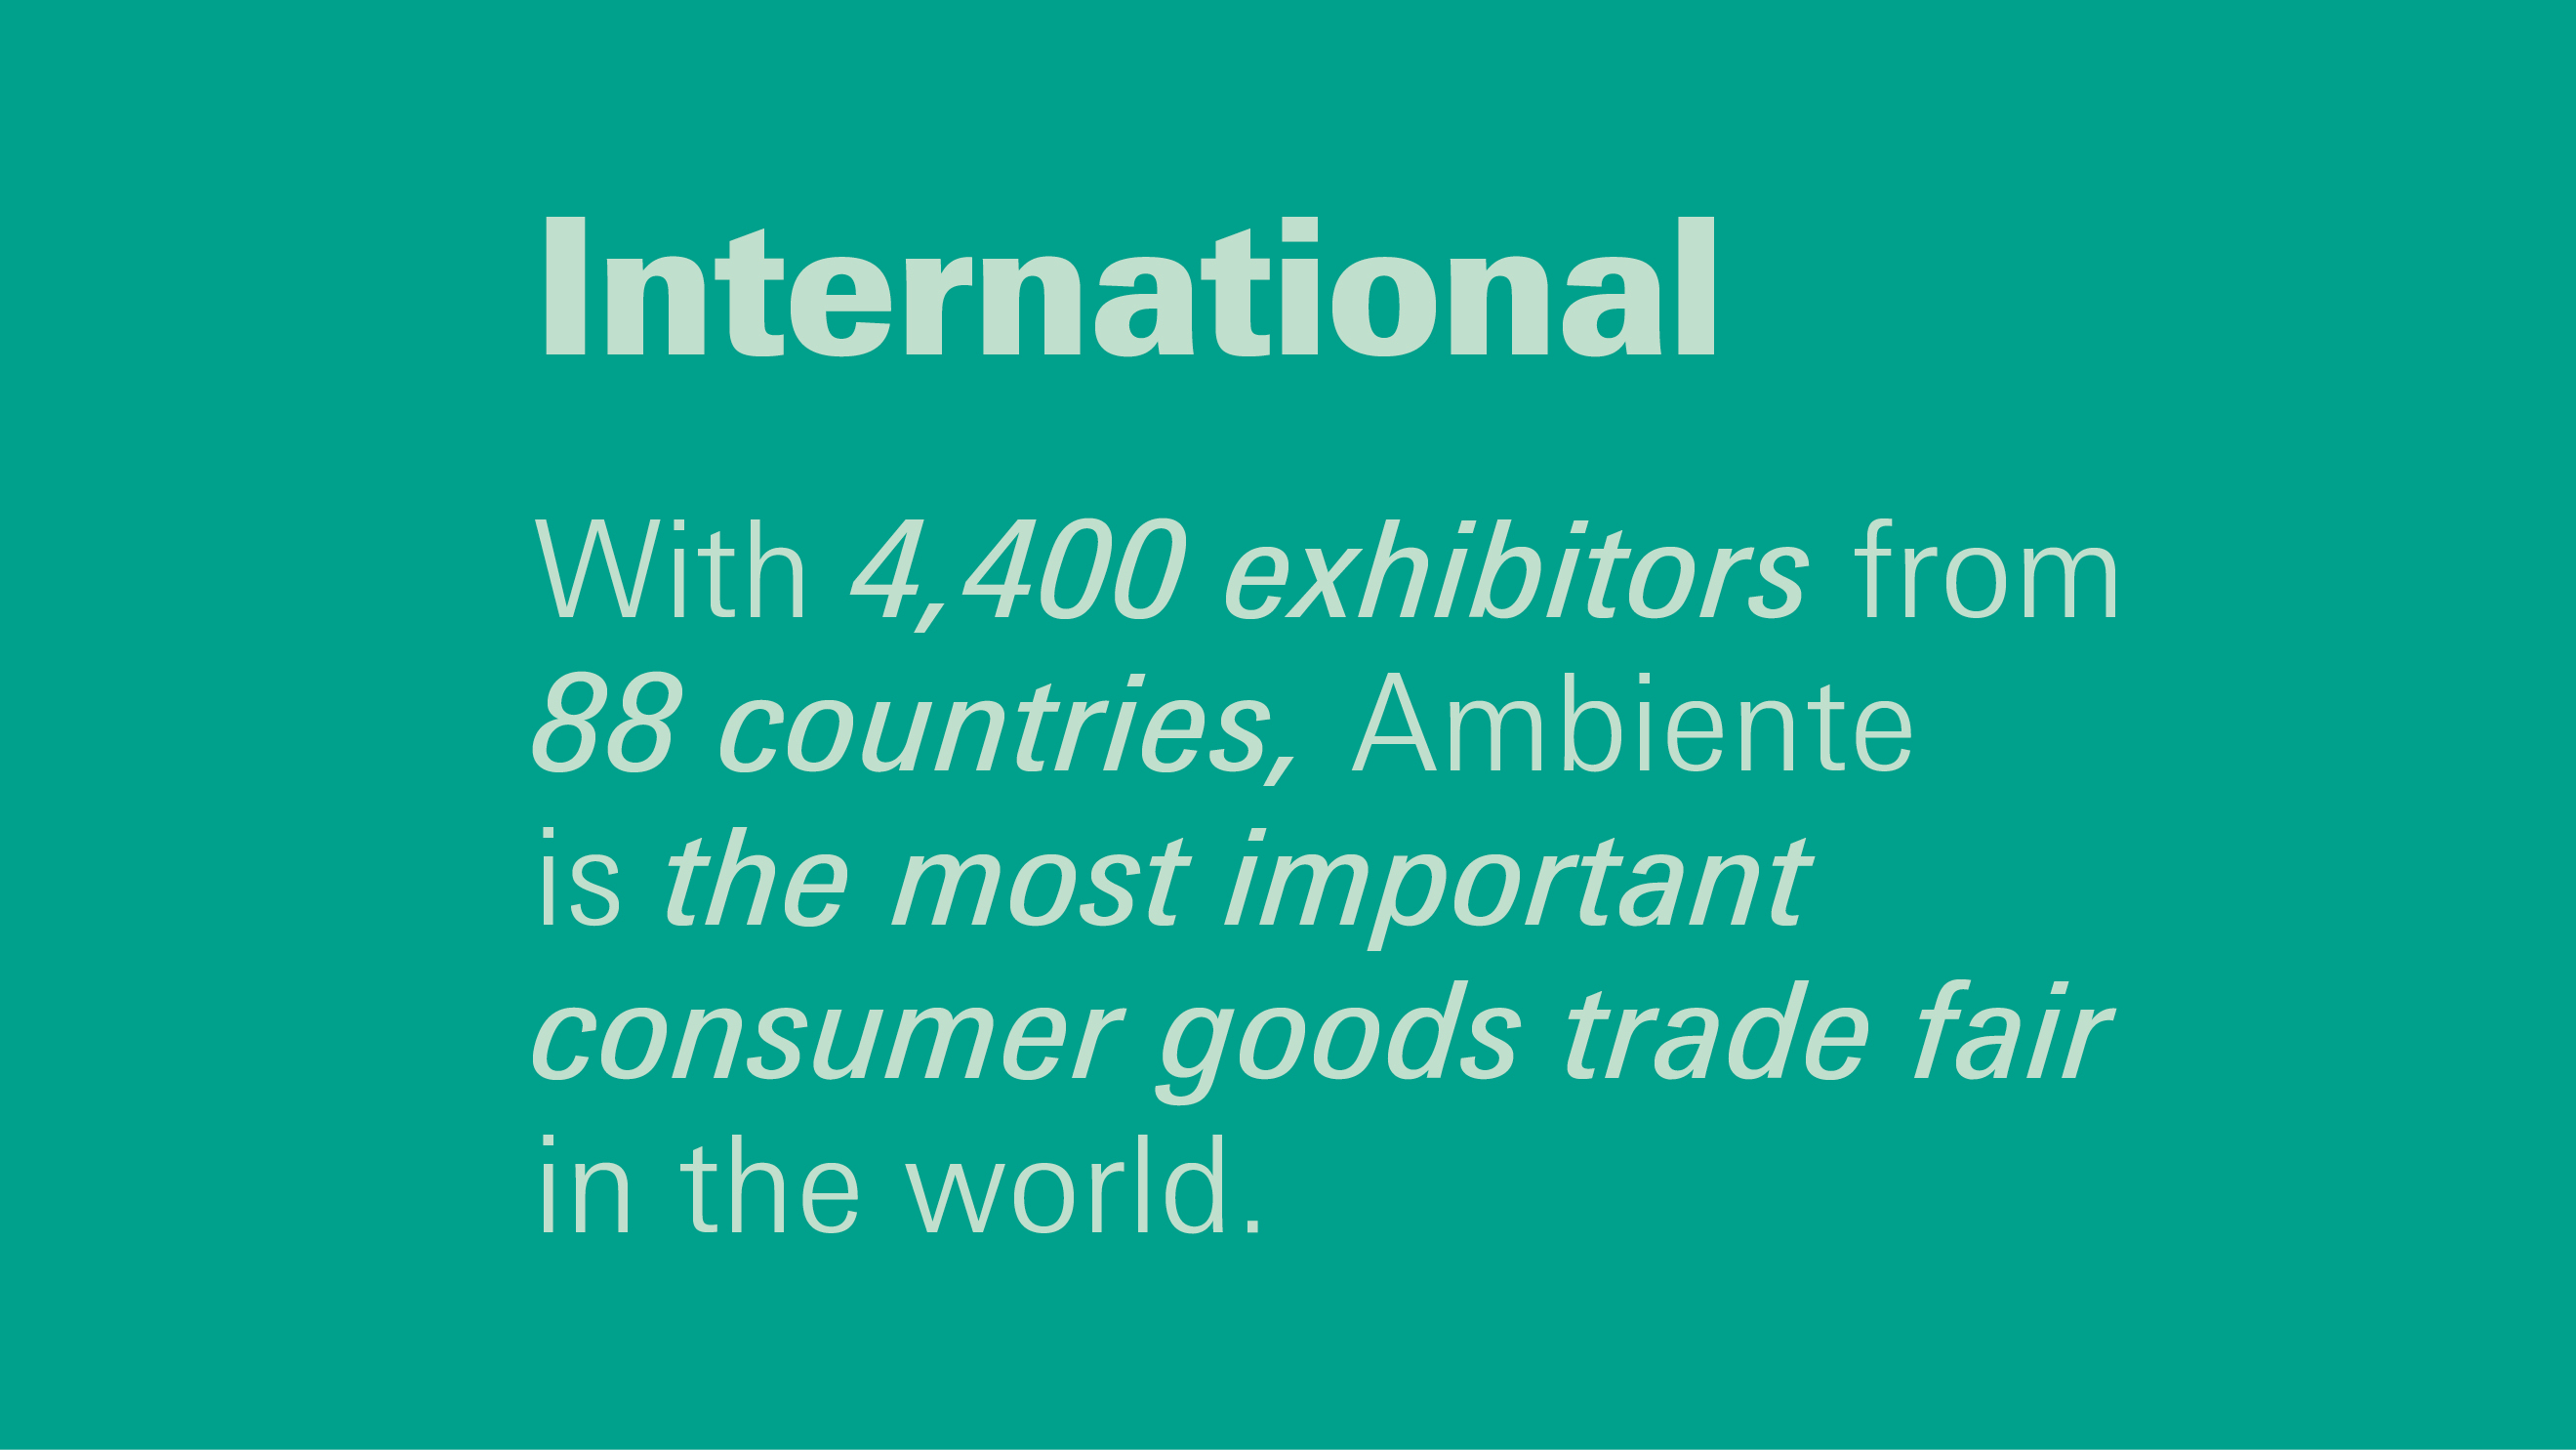 Advantages Ambiente: International